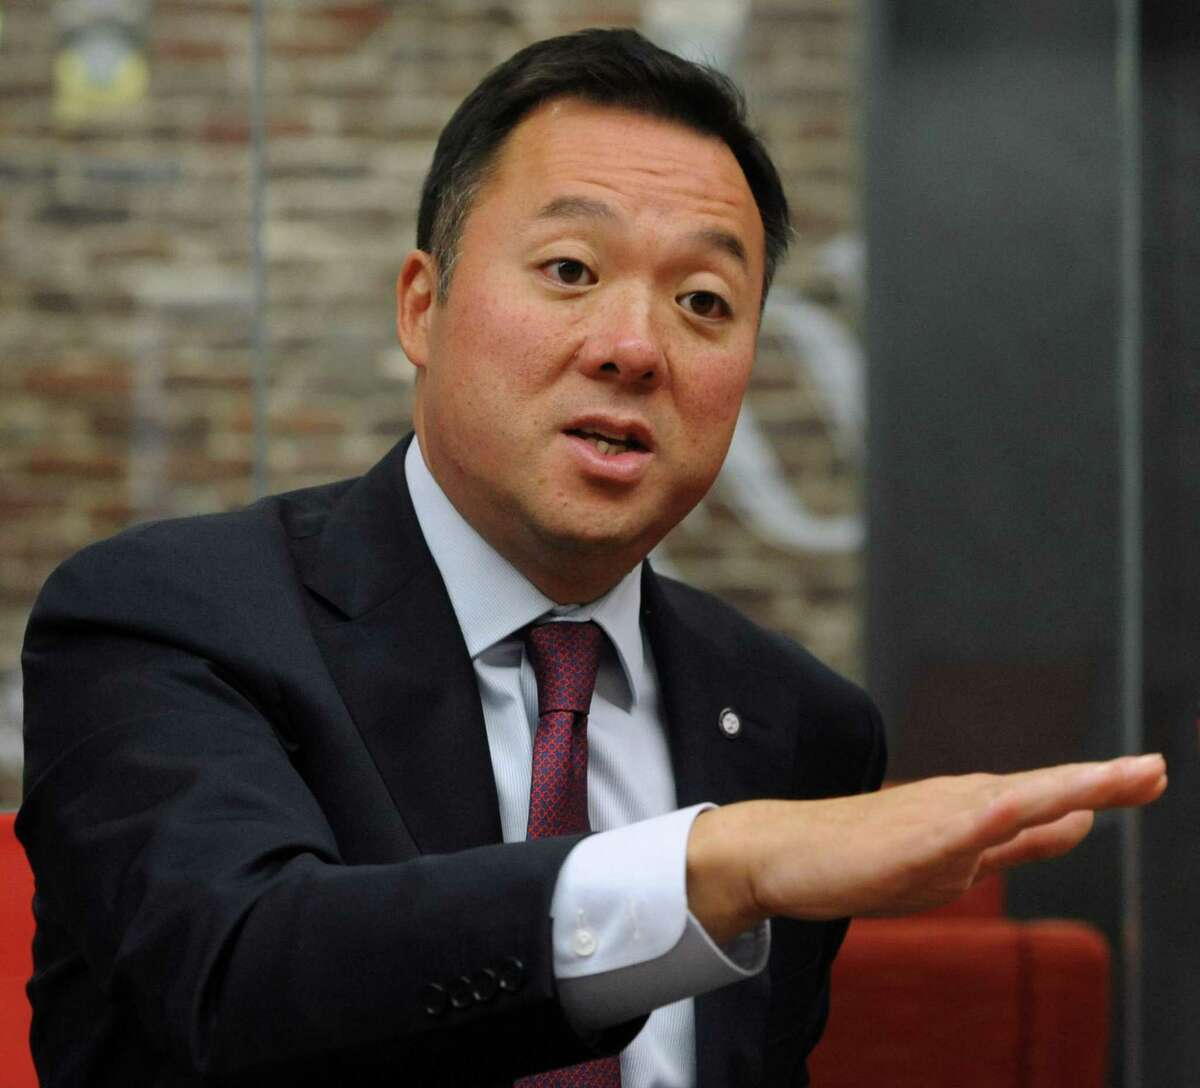 Connecticut Attorney General William Tong opposes Purdue Pharma's settlement plan.